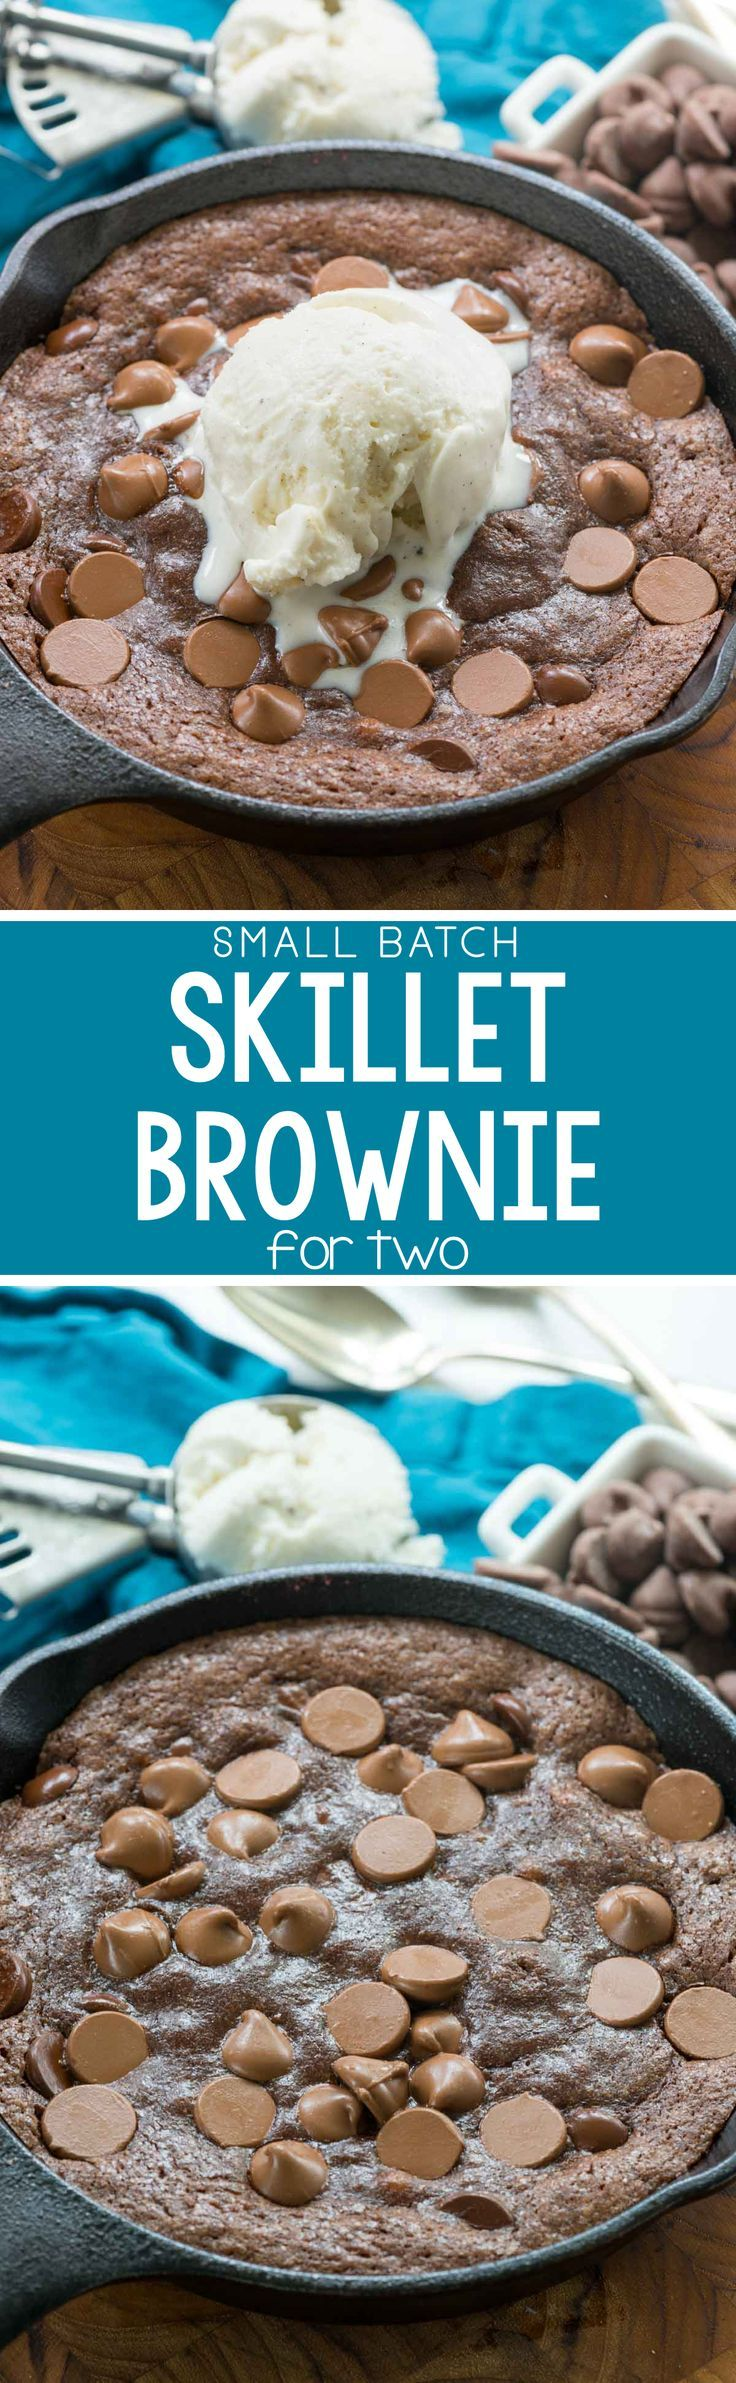 Small Batch Skillet Brownie for two - this easy one bowl brownie recipe makes a small batch for two! It's gooey and rich and my FAVORITE brownie recipe!